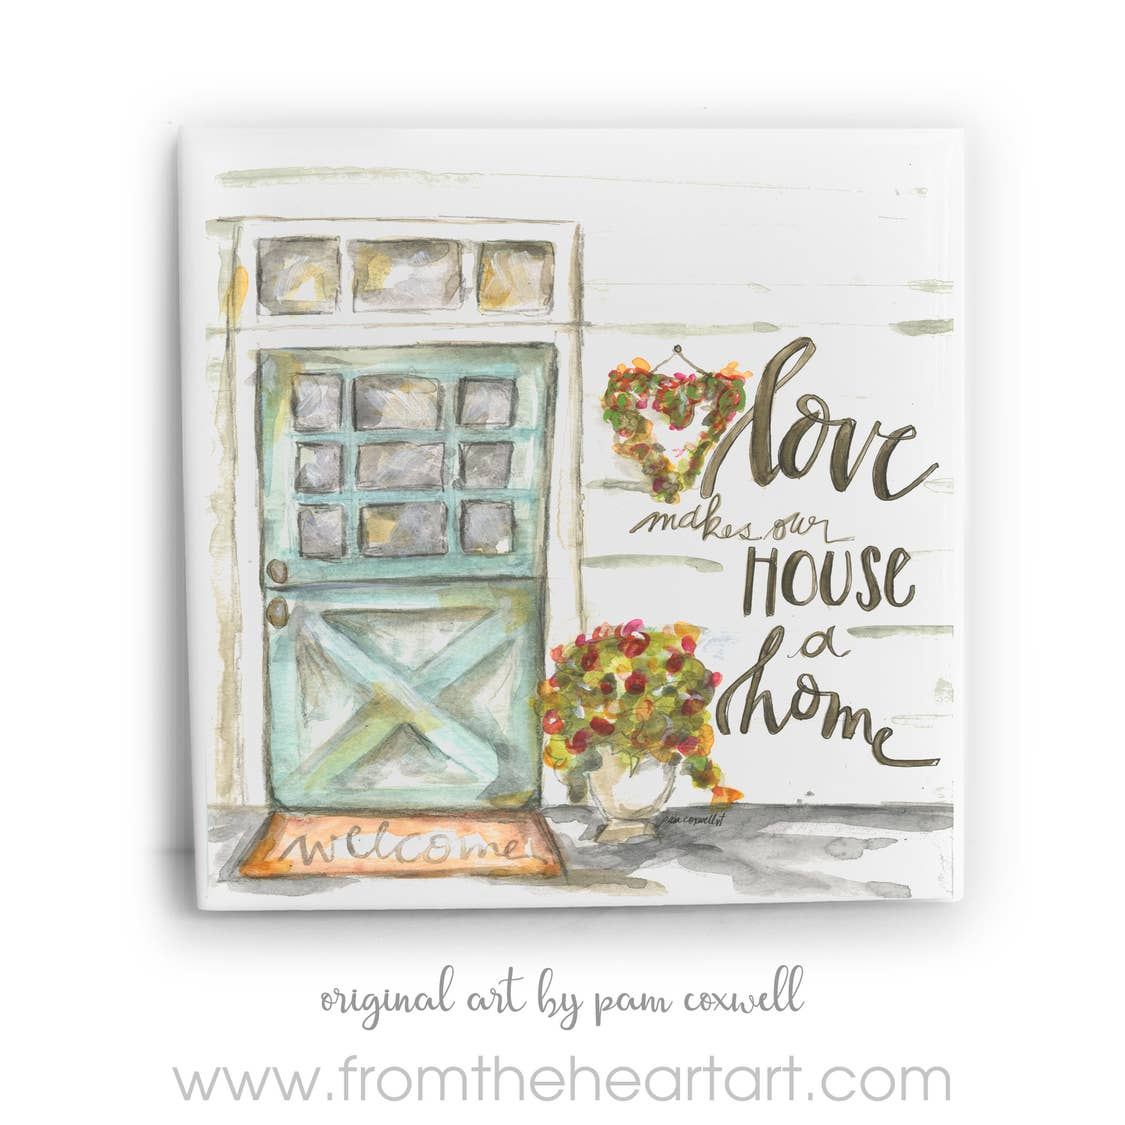 Spring Door  Ceramic Tile by Pam Coxwell